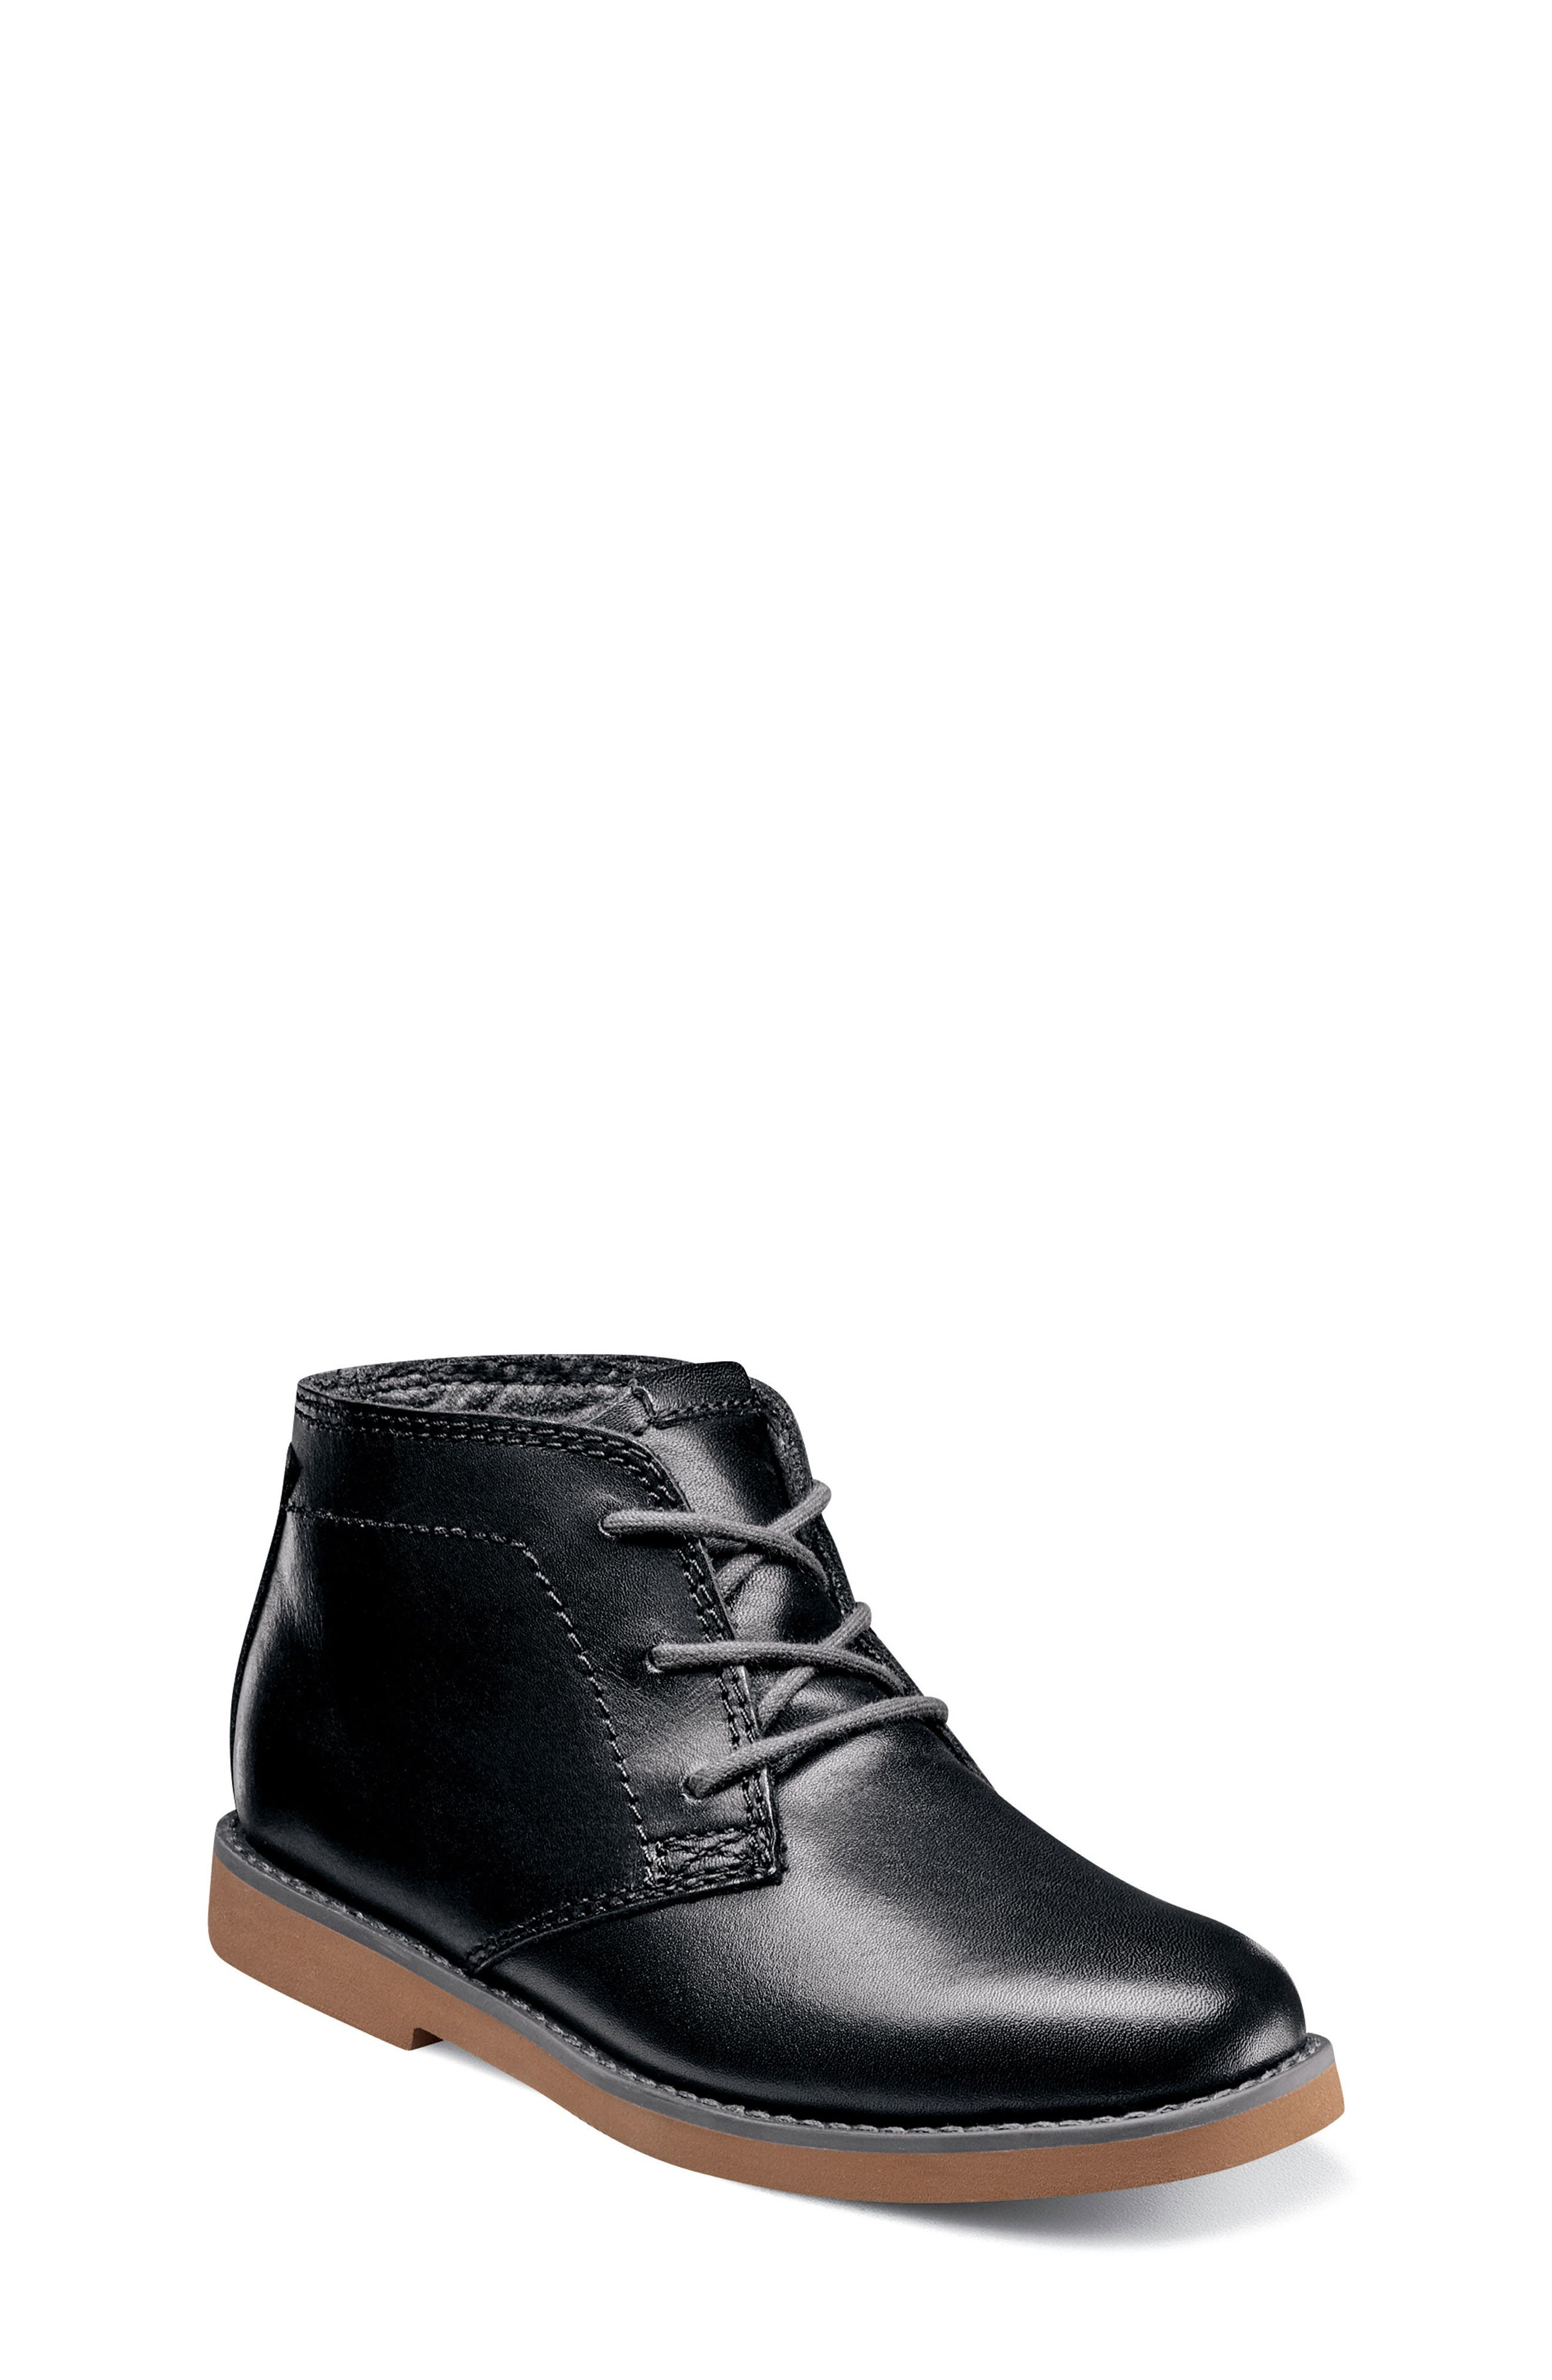 'Bucktown' Chukka Boot,                         Main,                         color, Black Smooth With Brick Sole